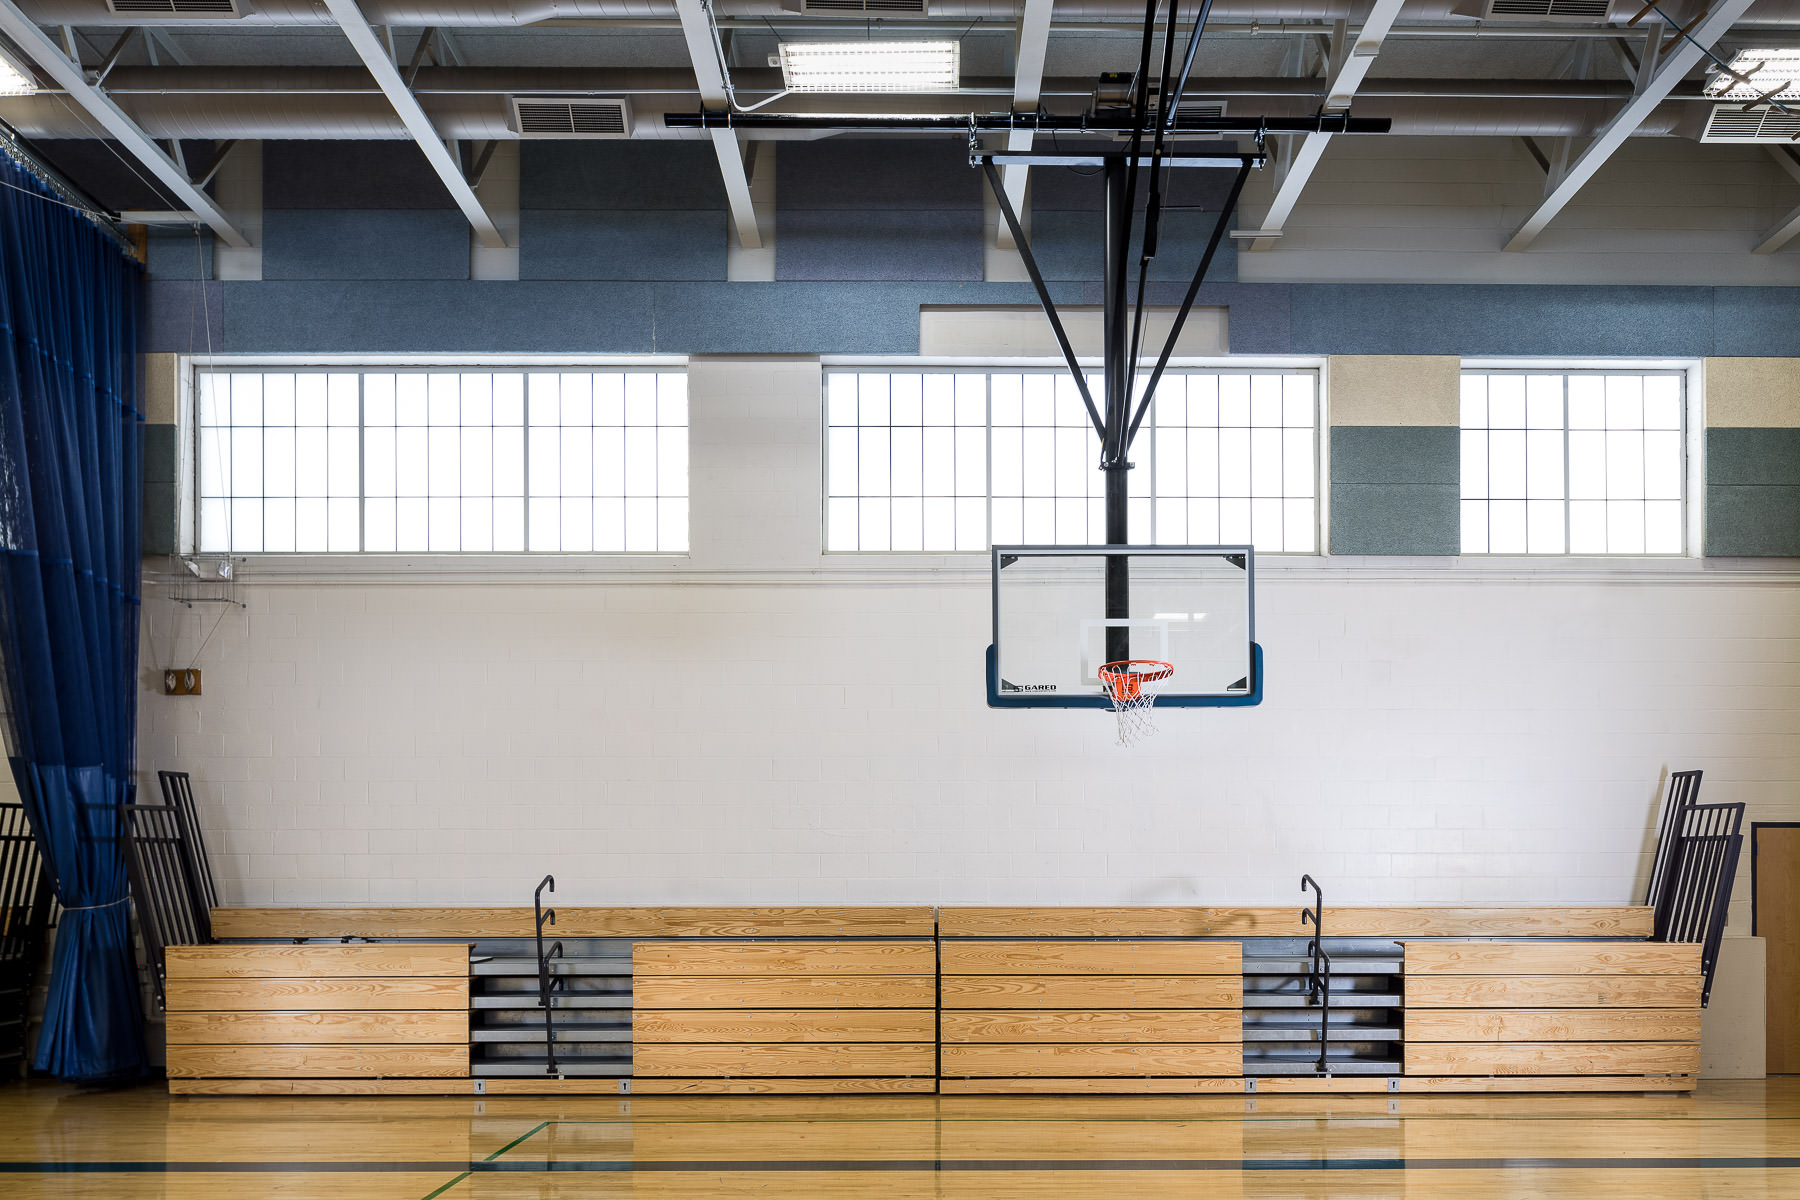 The renovated gymnasium at Vergennes Middle and High School in Vermont by Neagley & Chase Construction by commercial photographer Stina Booth